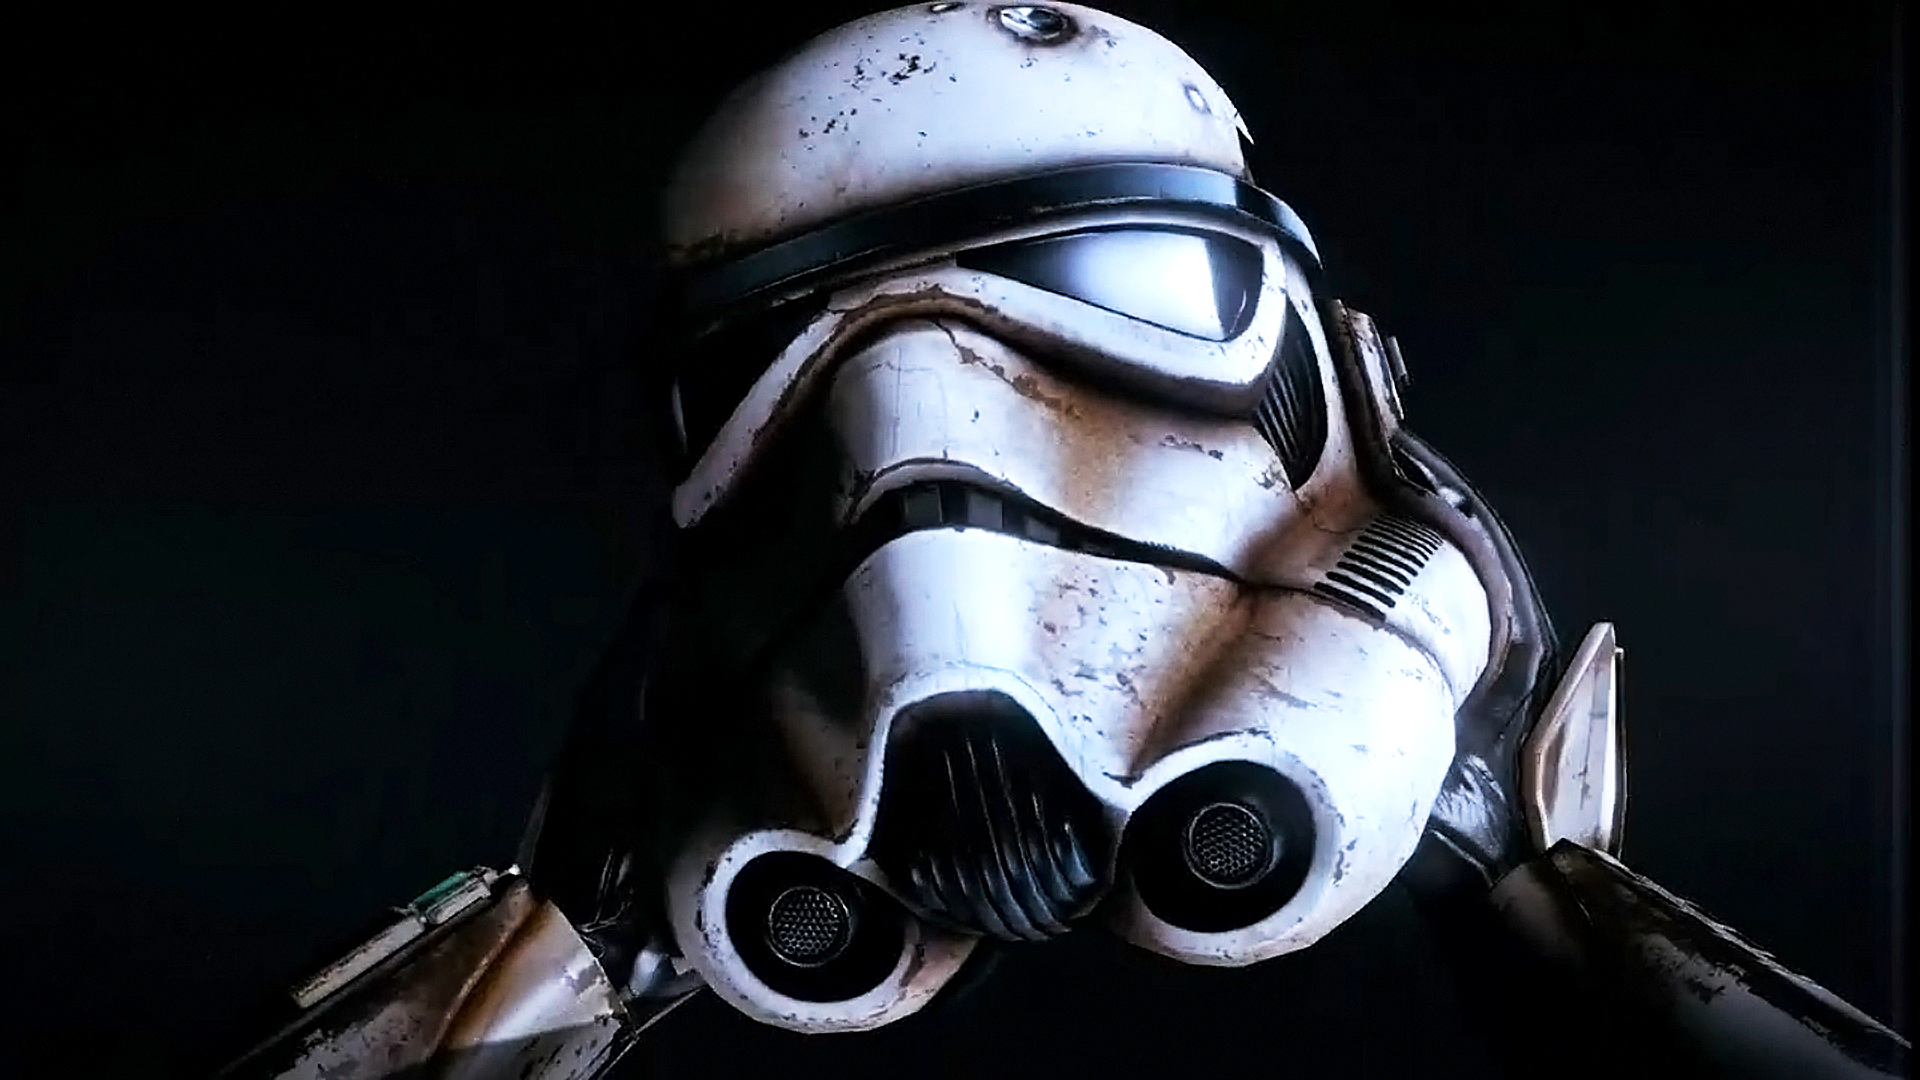 50 hd star wars - photo #32